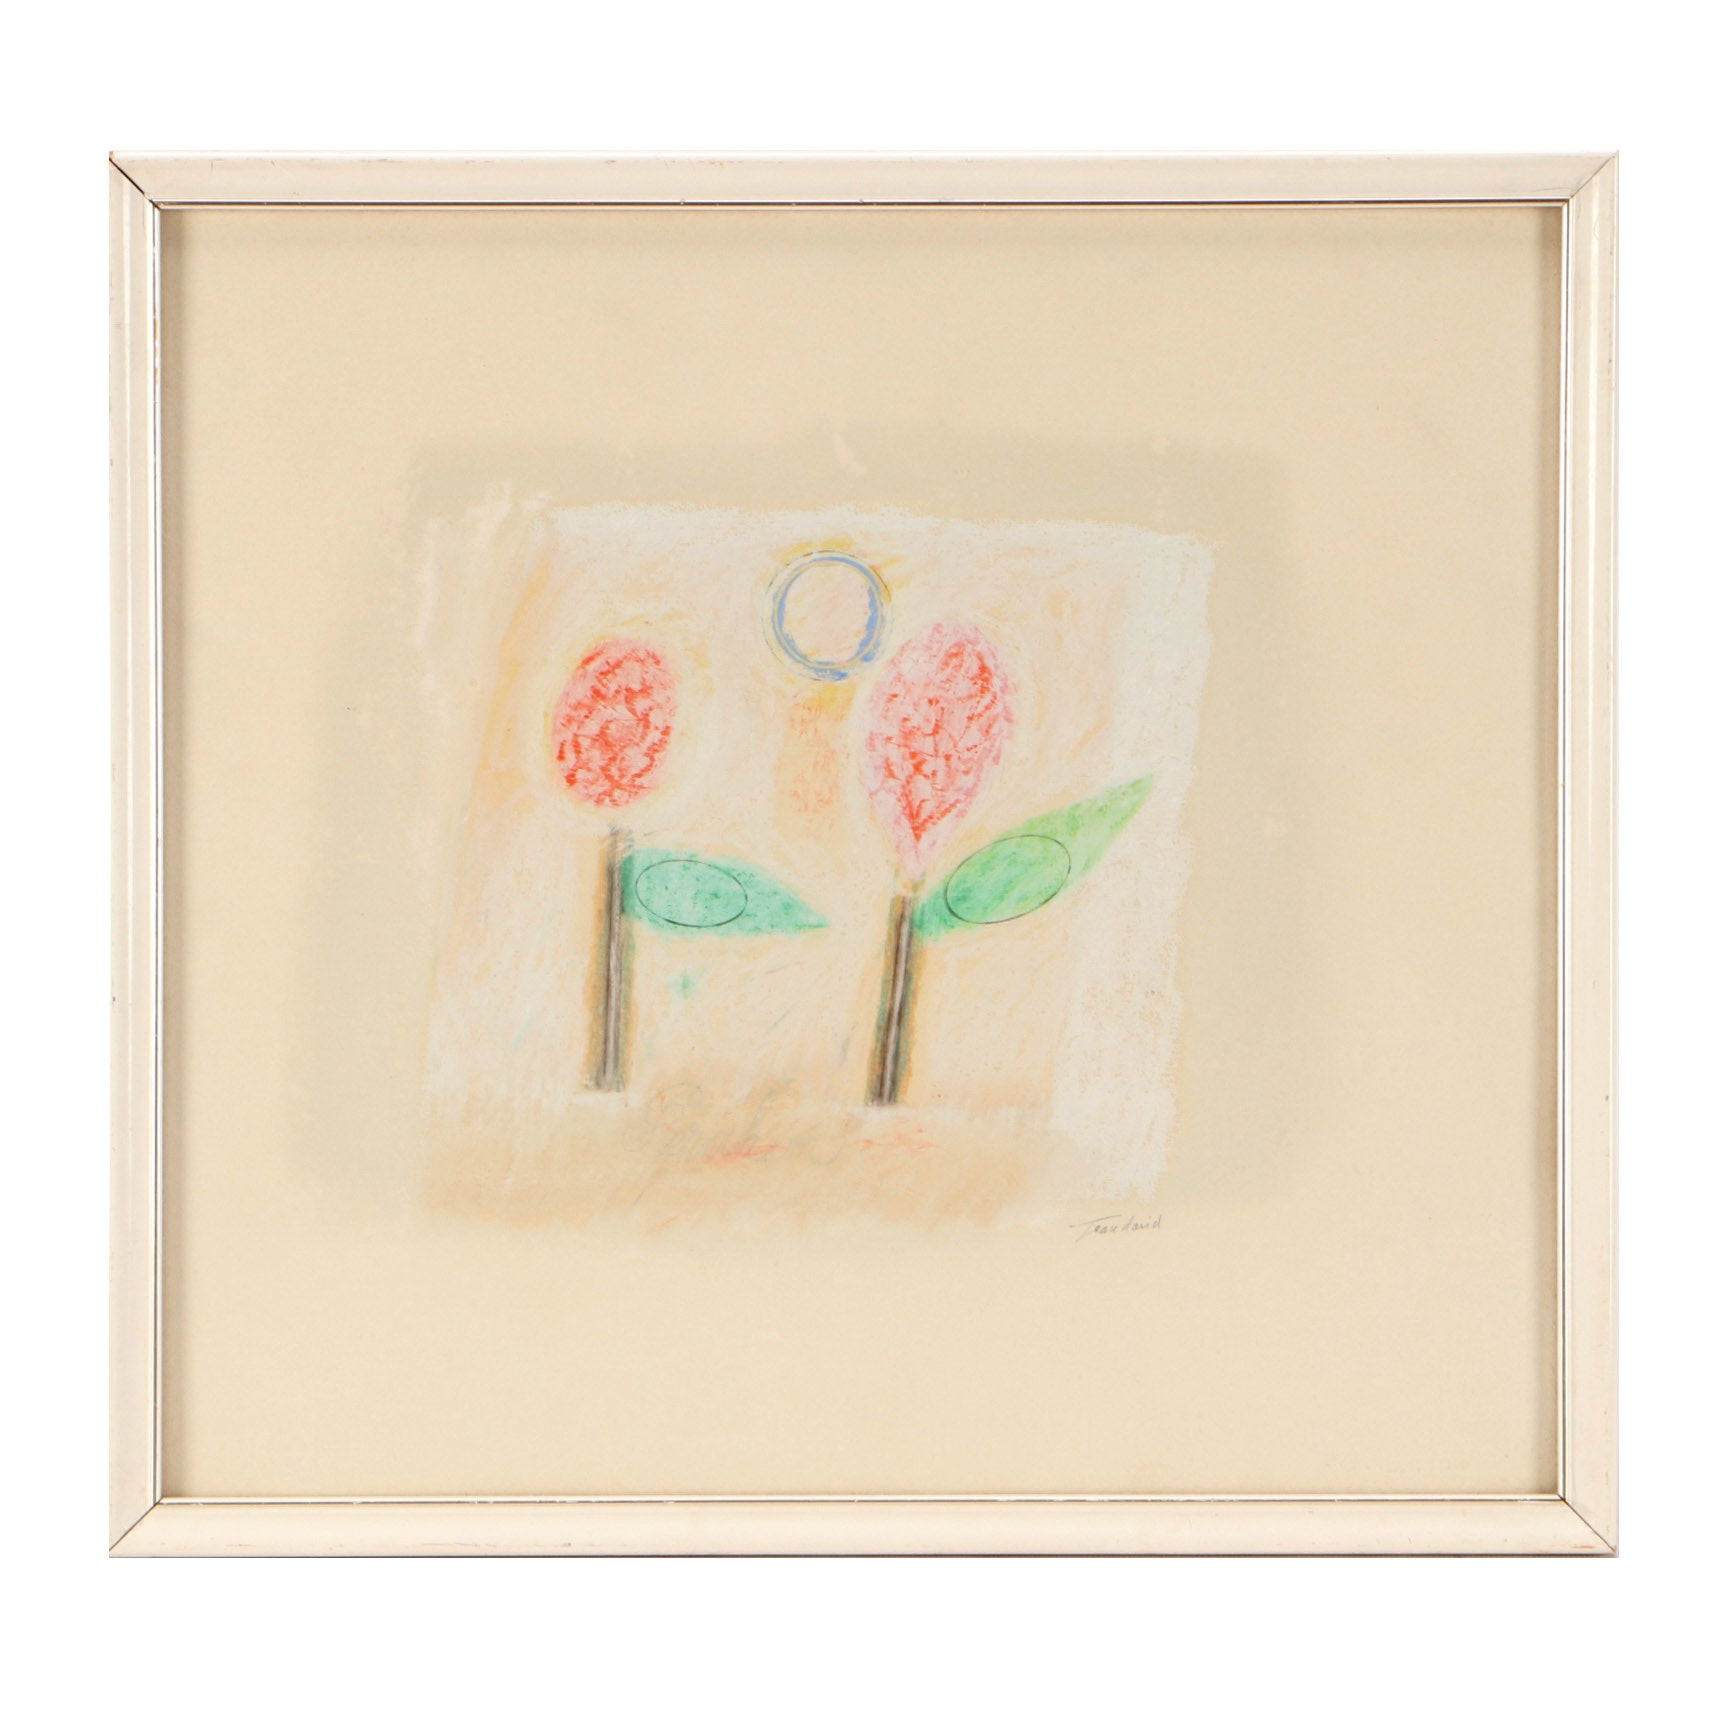 Jean David Modernist Graphite and Pastel Drawing of Flowers